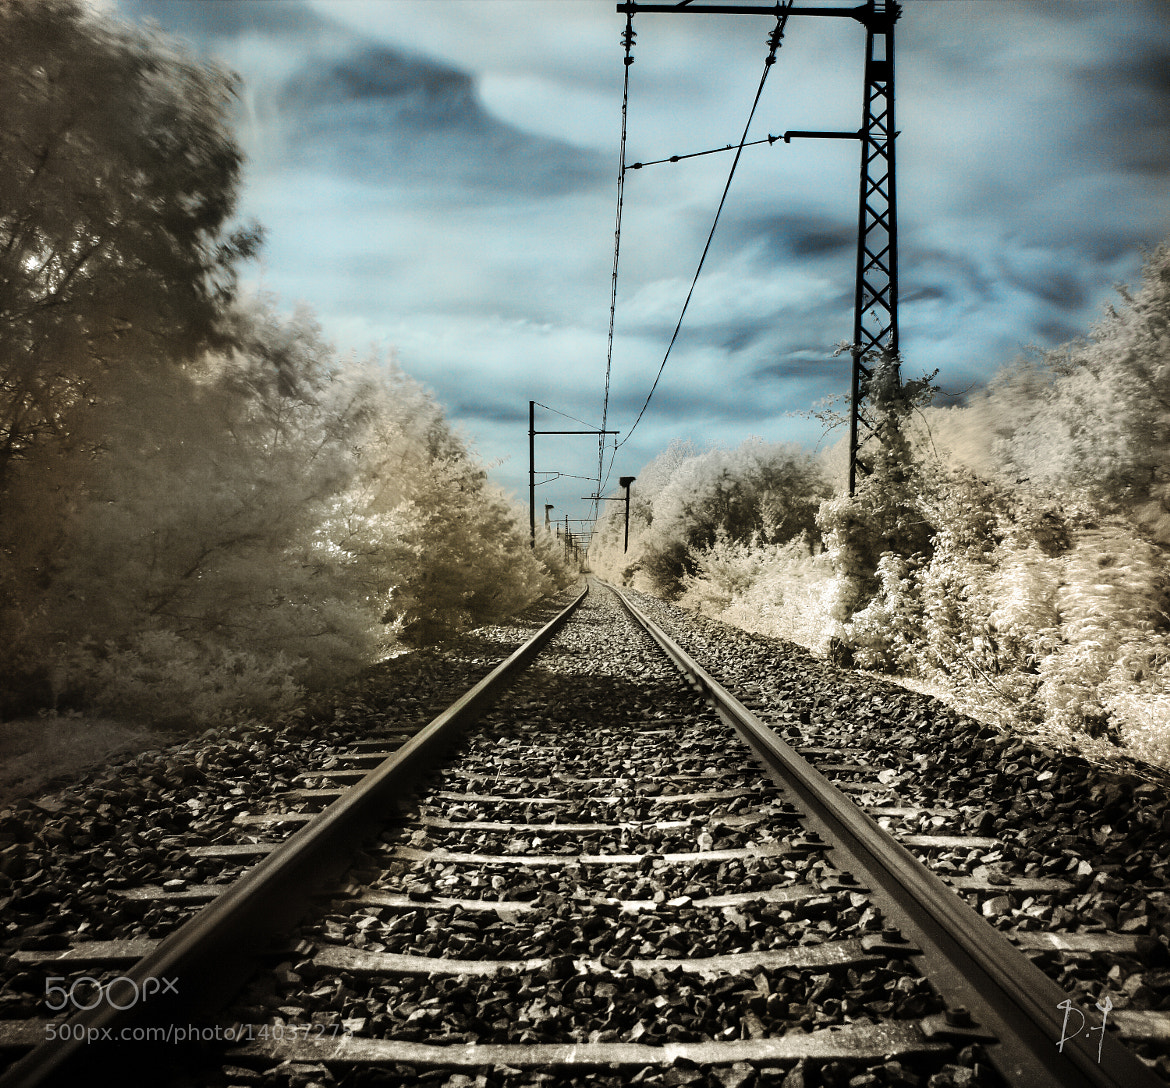 Photograph Track by dufau julien on 500px